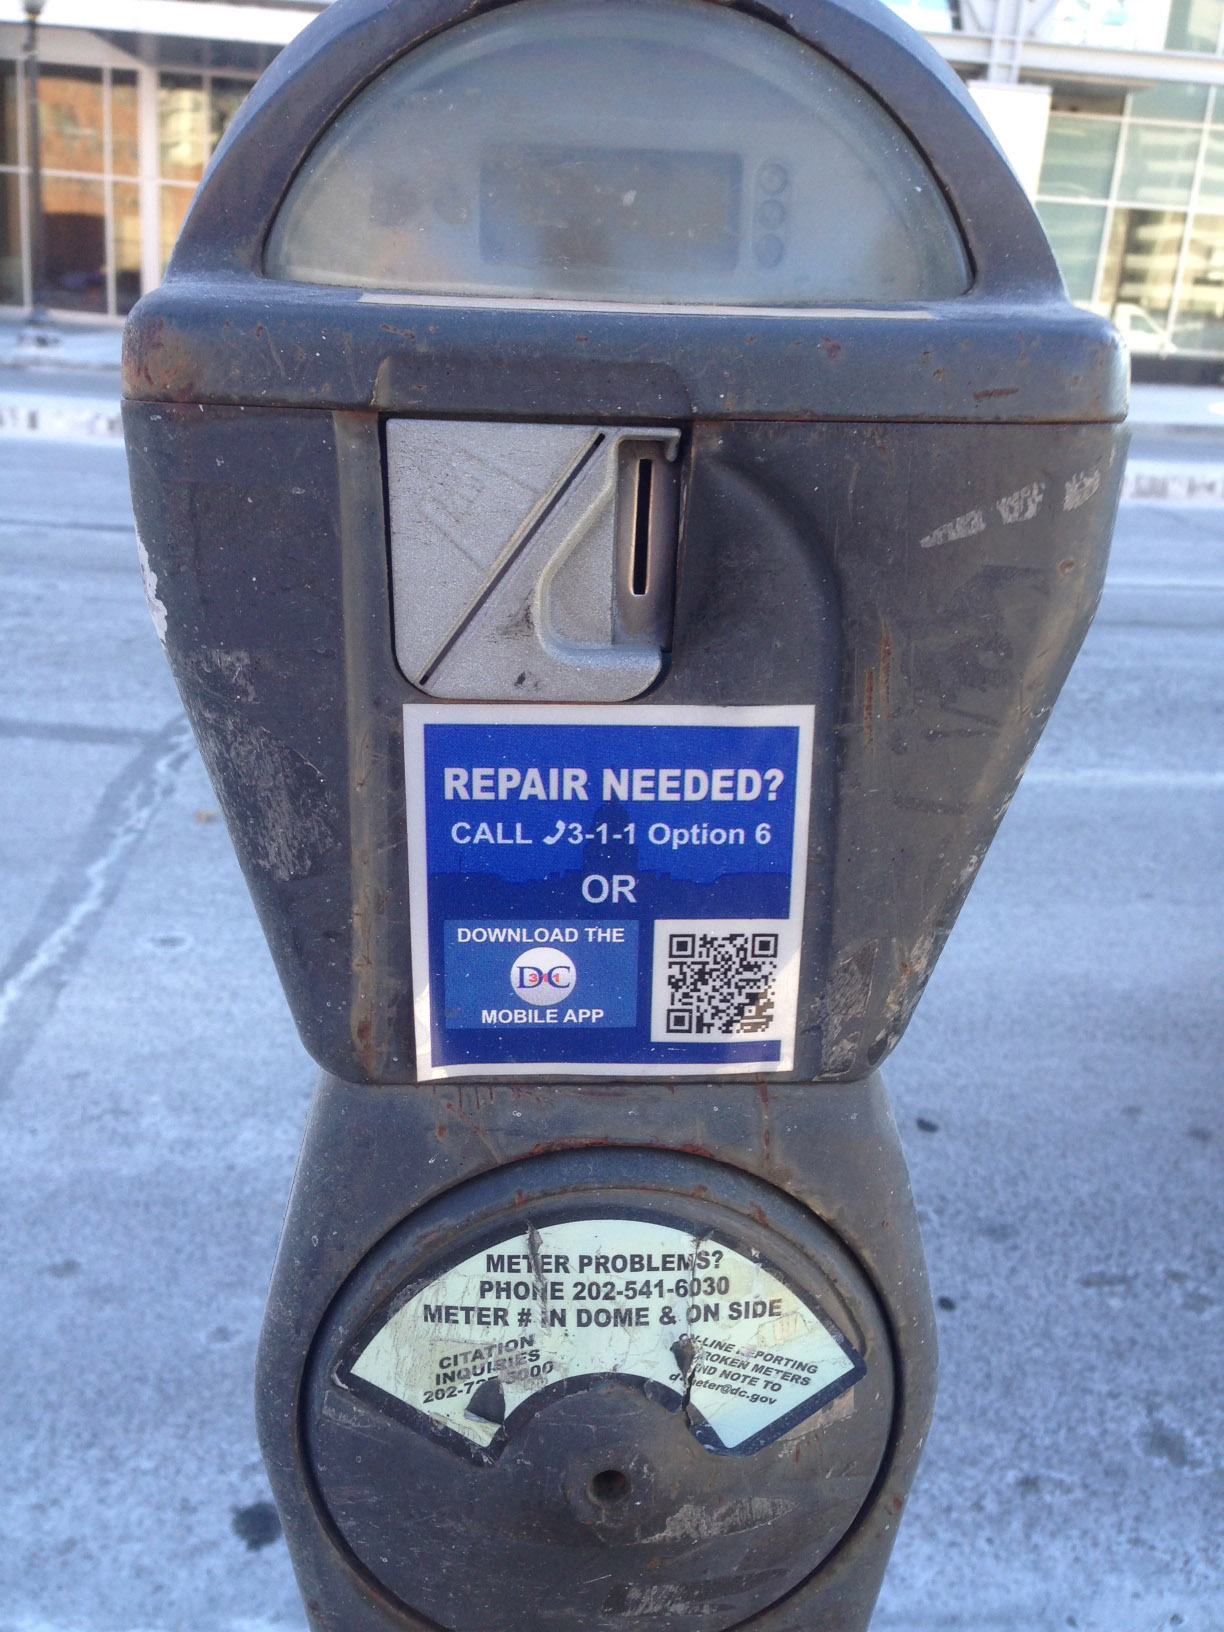 Why reporting a broken parking meter may not help you